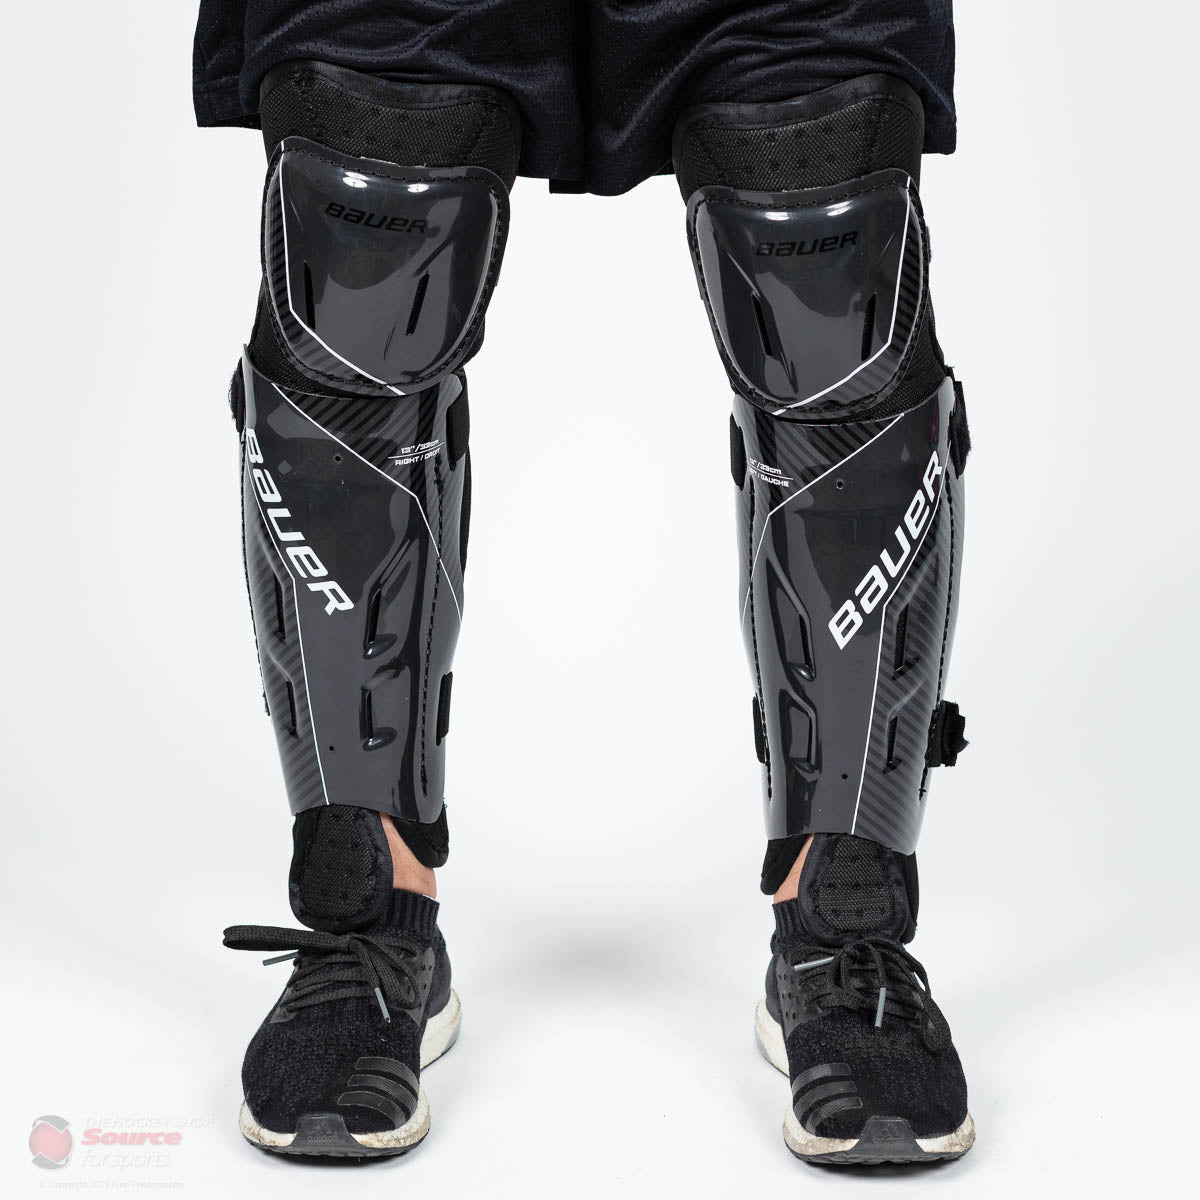 Bauer Performance Senior Ball Hockey Shin Guards